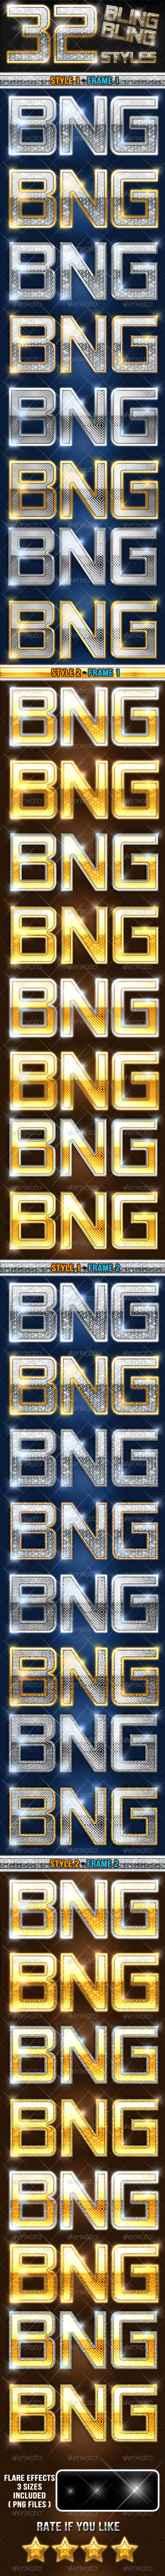 GraphicRiver 32 Bling Bling And Luxury Styles 6264402